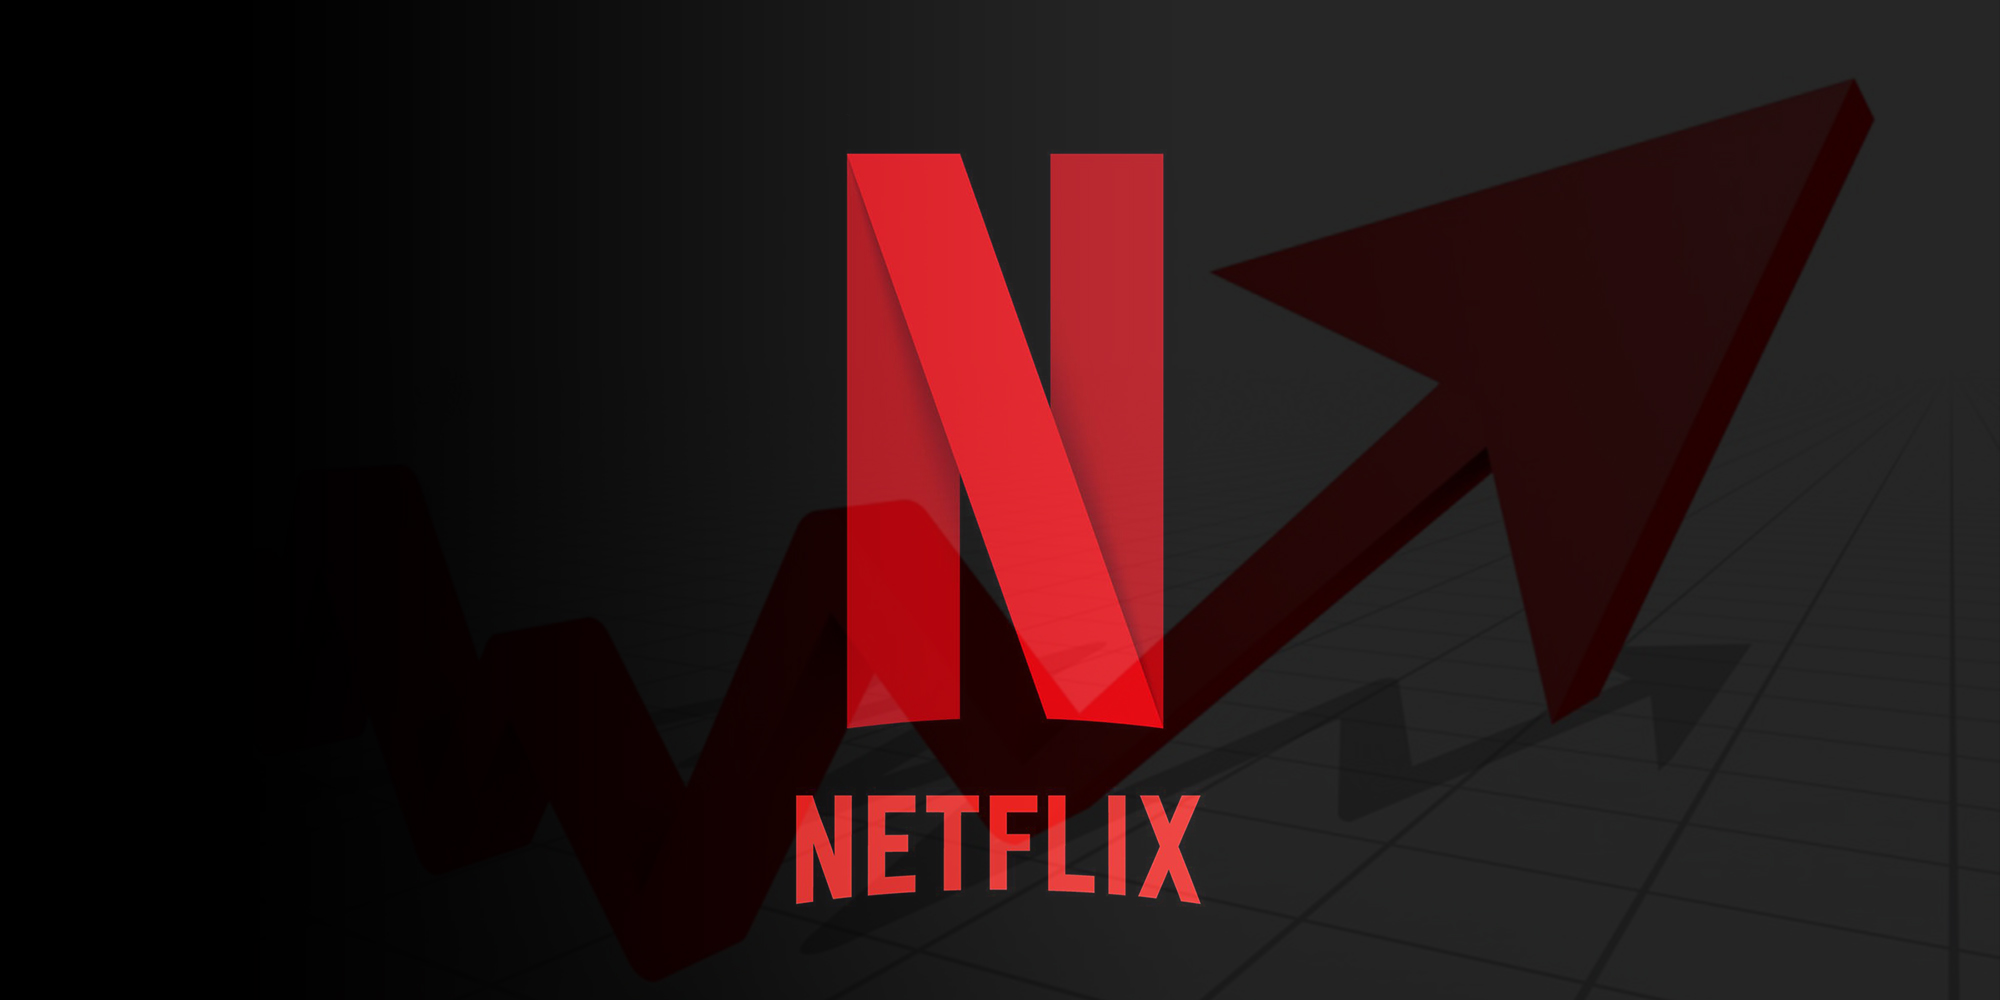 Moving Company Reviews >> Netflix Stock Hits All-Time High | Screen Rant